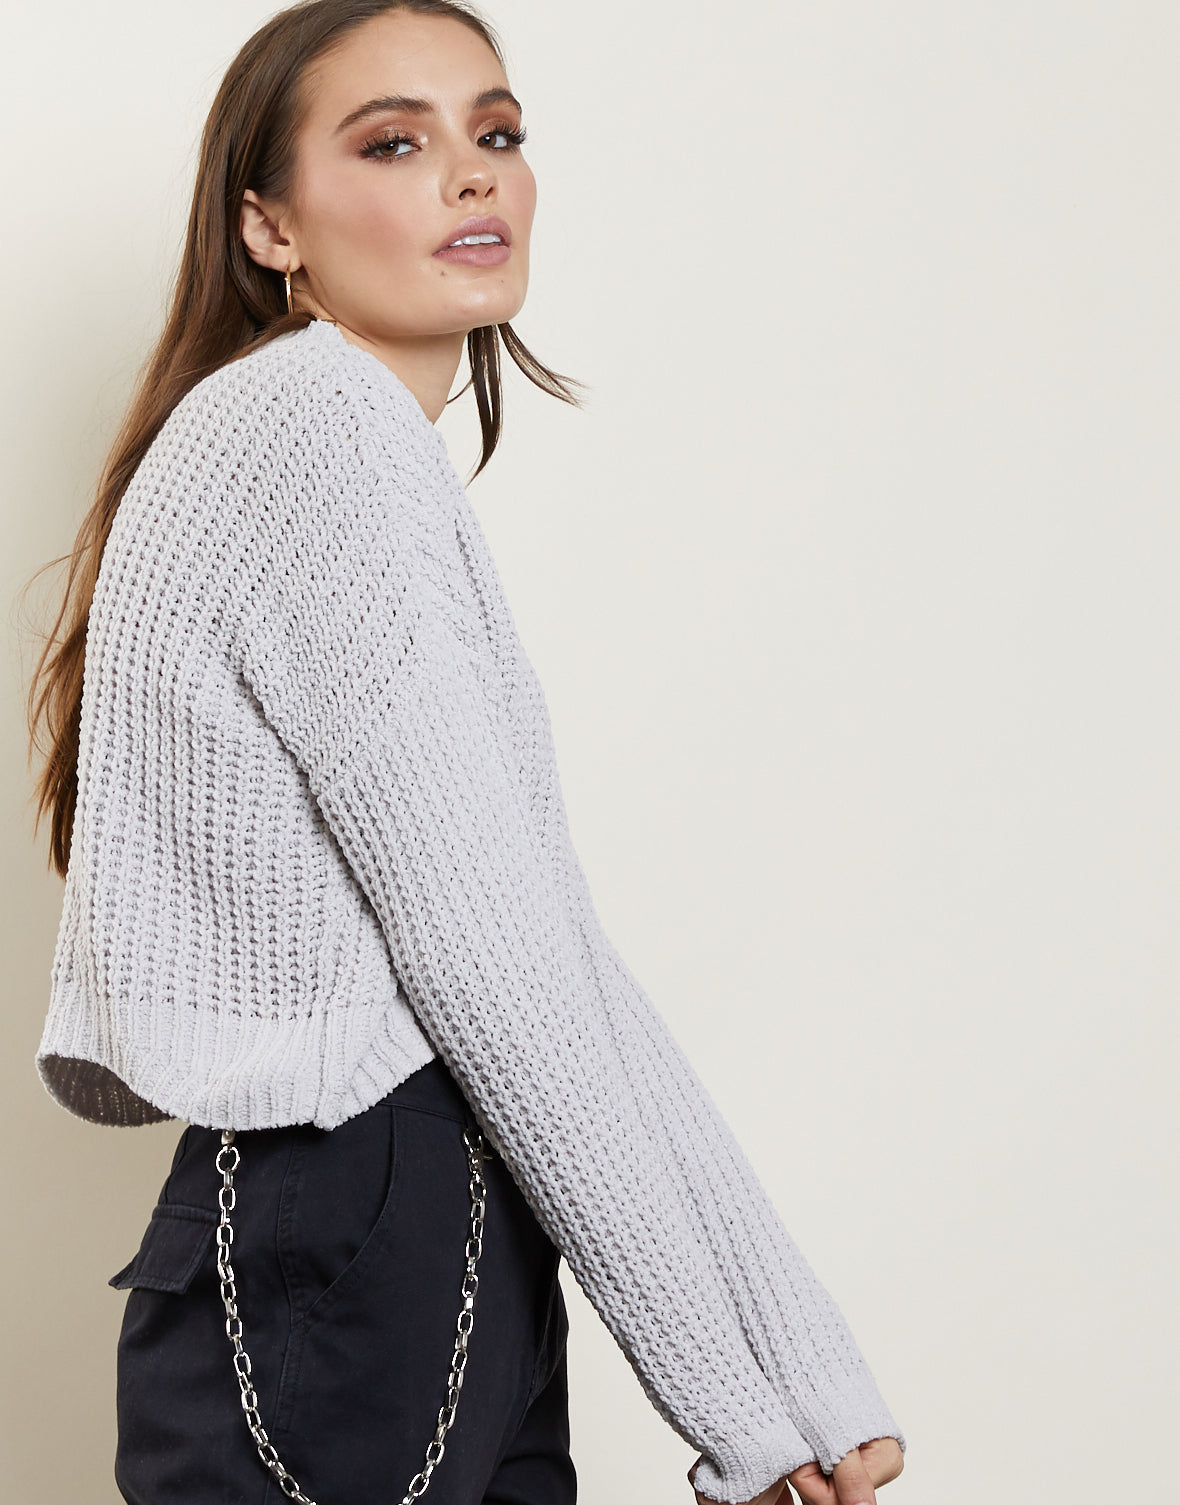 Making Waves Knit Sweater